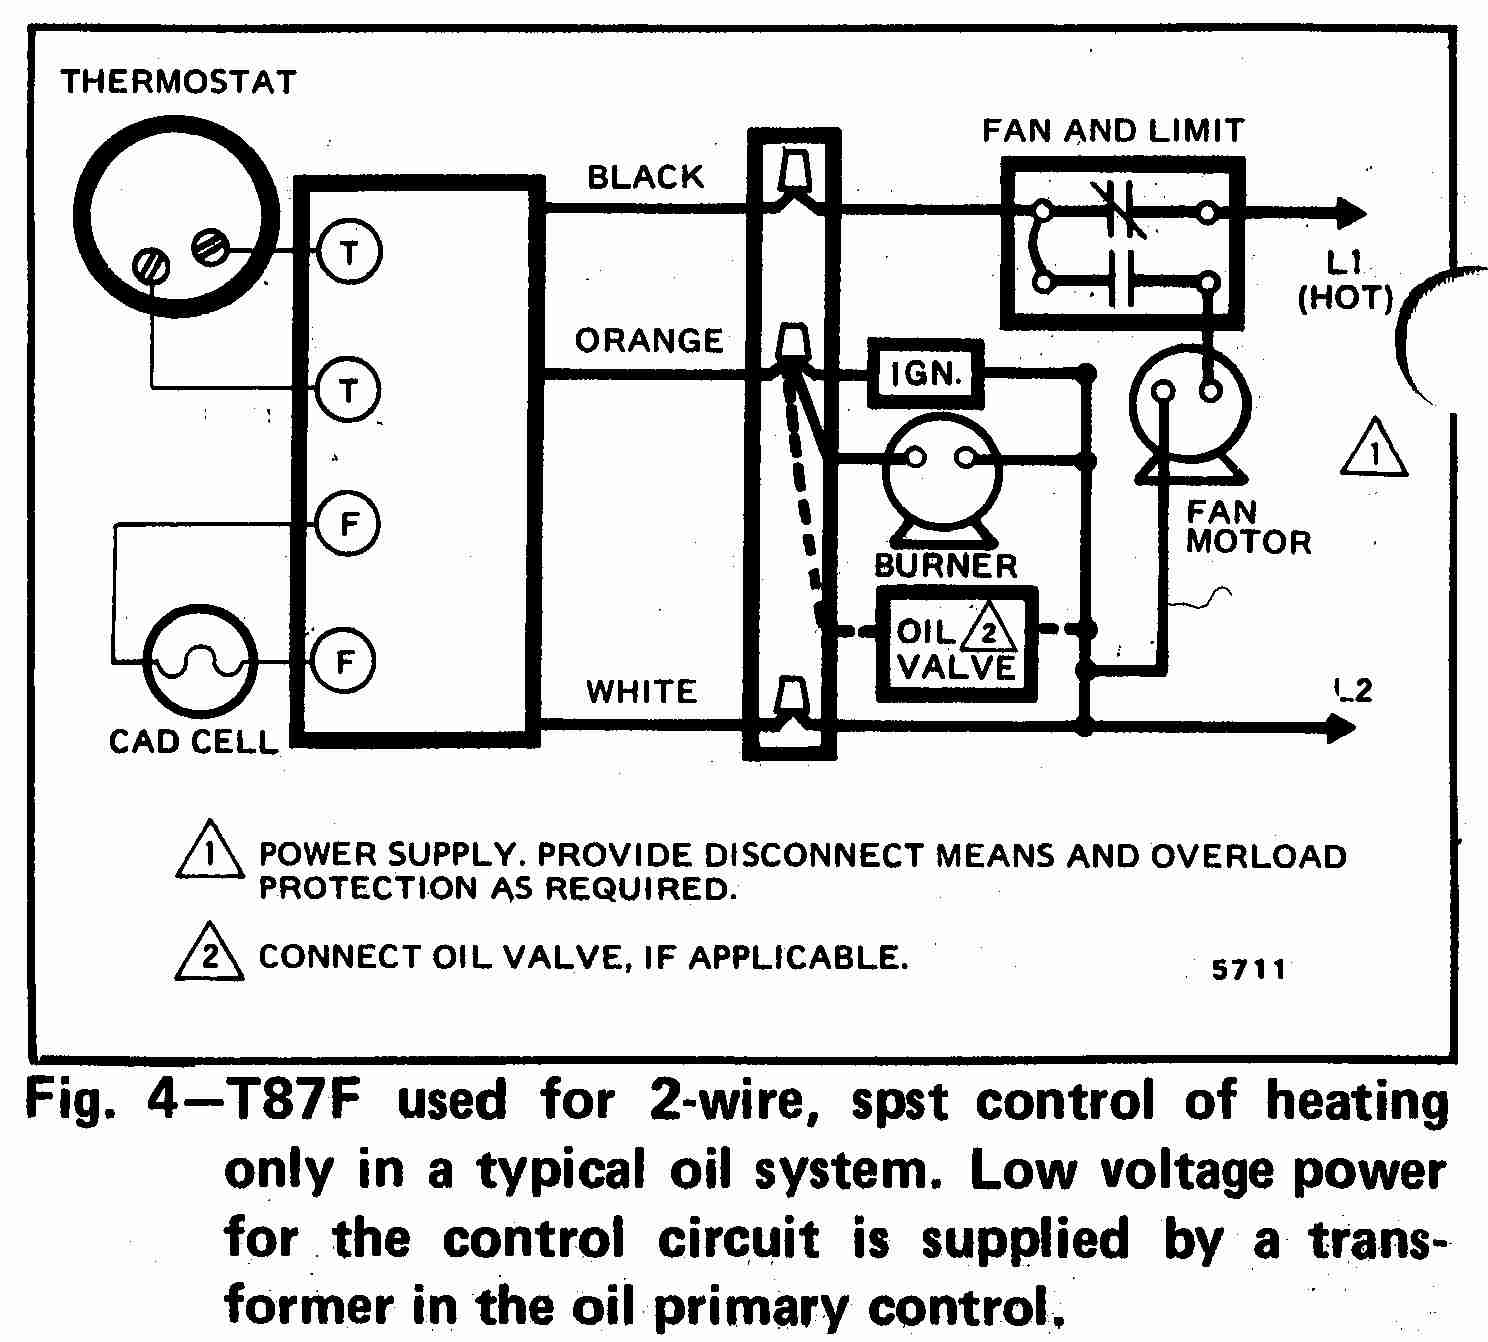 TT_T87F_0002_2W_DJF room thermostat wiring diagrams for hvac systems intertherm thermostat wiring diagram at n-0.co